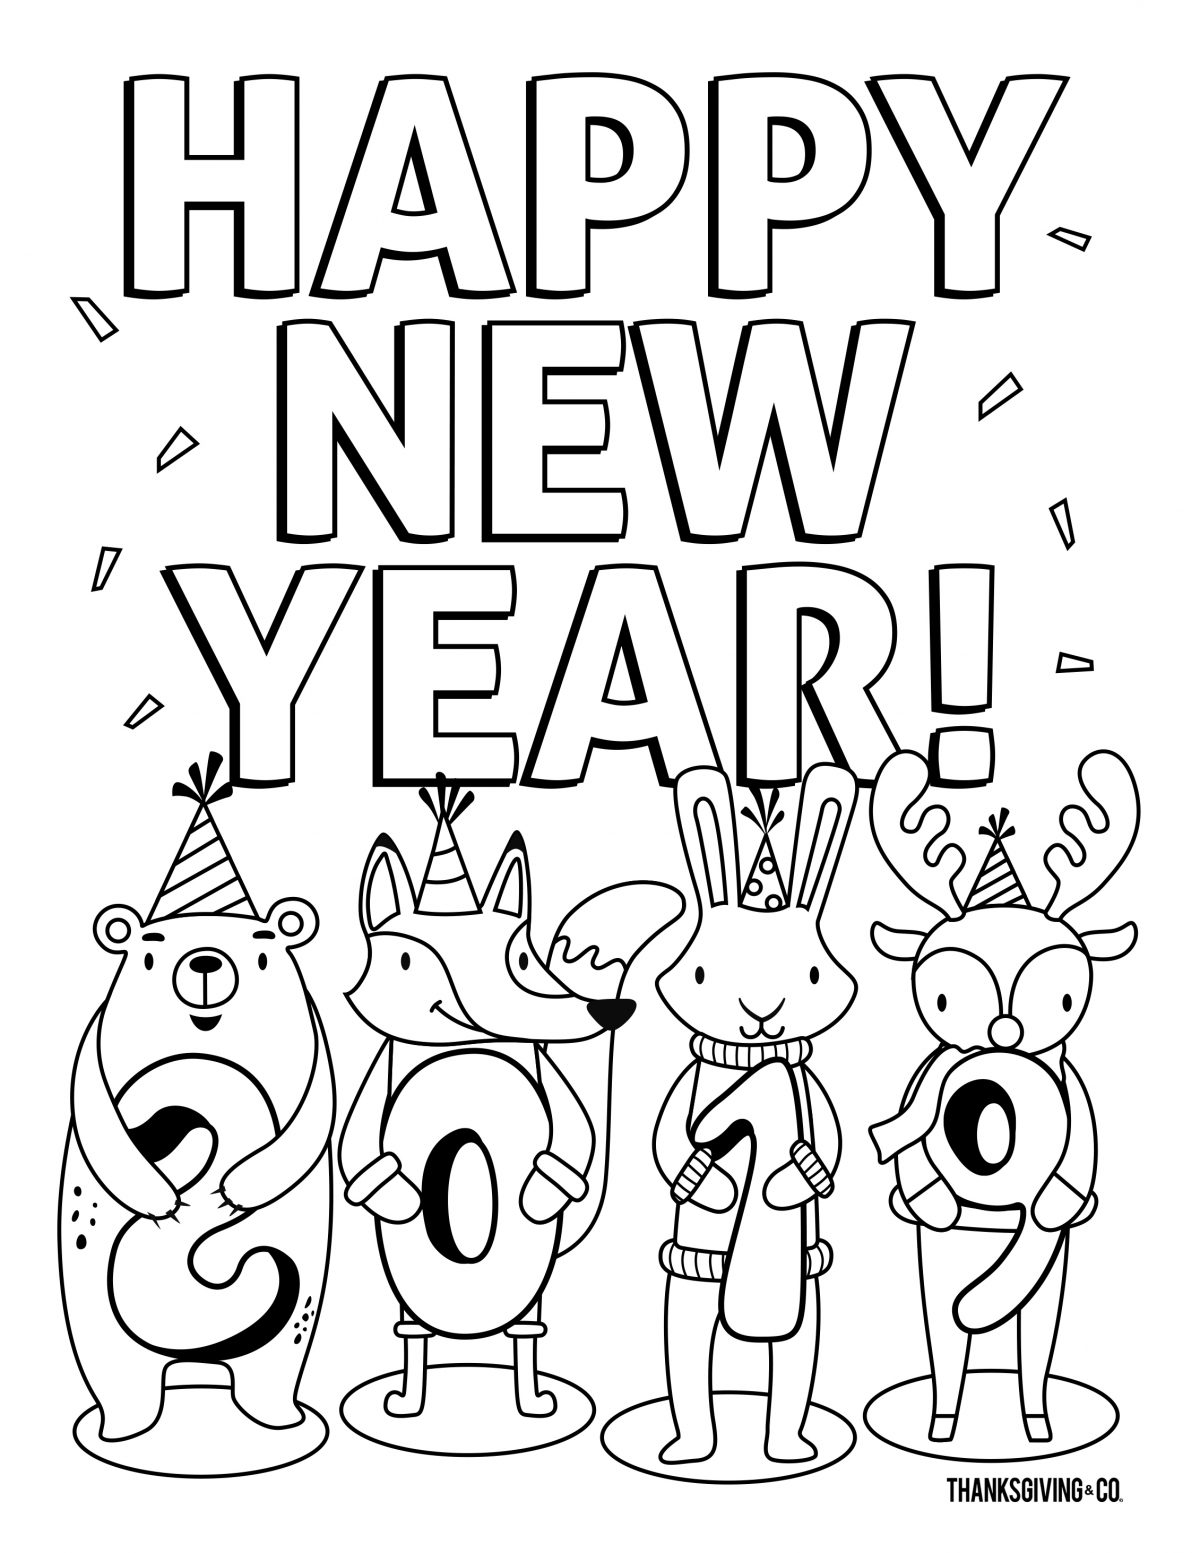 NewYear Coloring 2